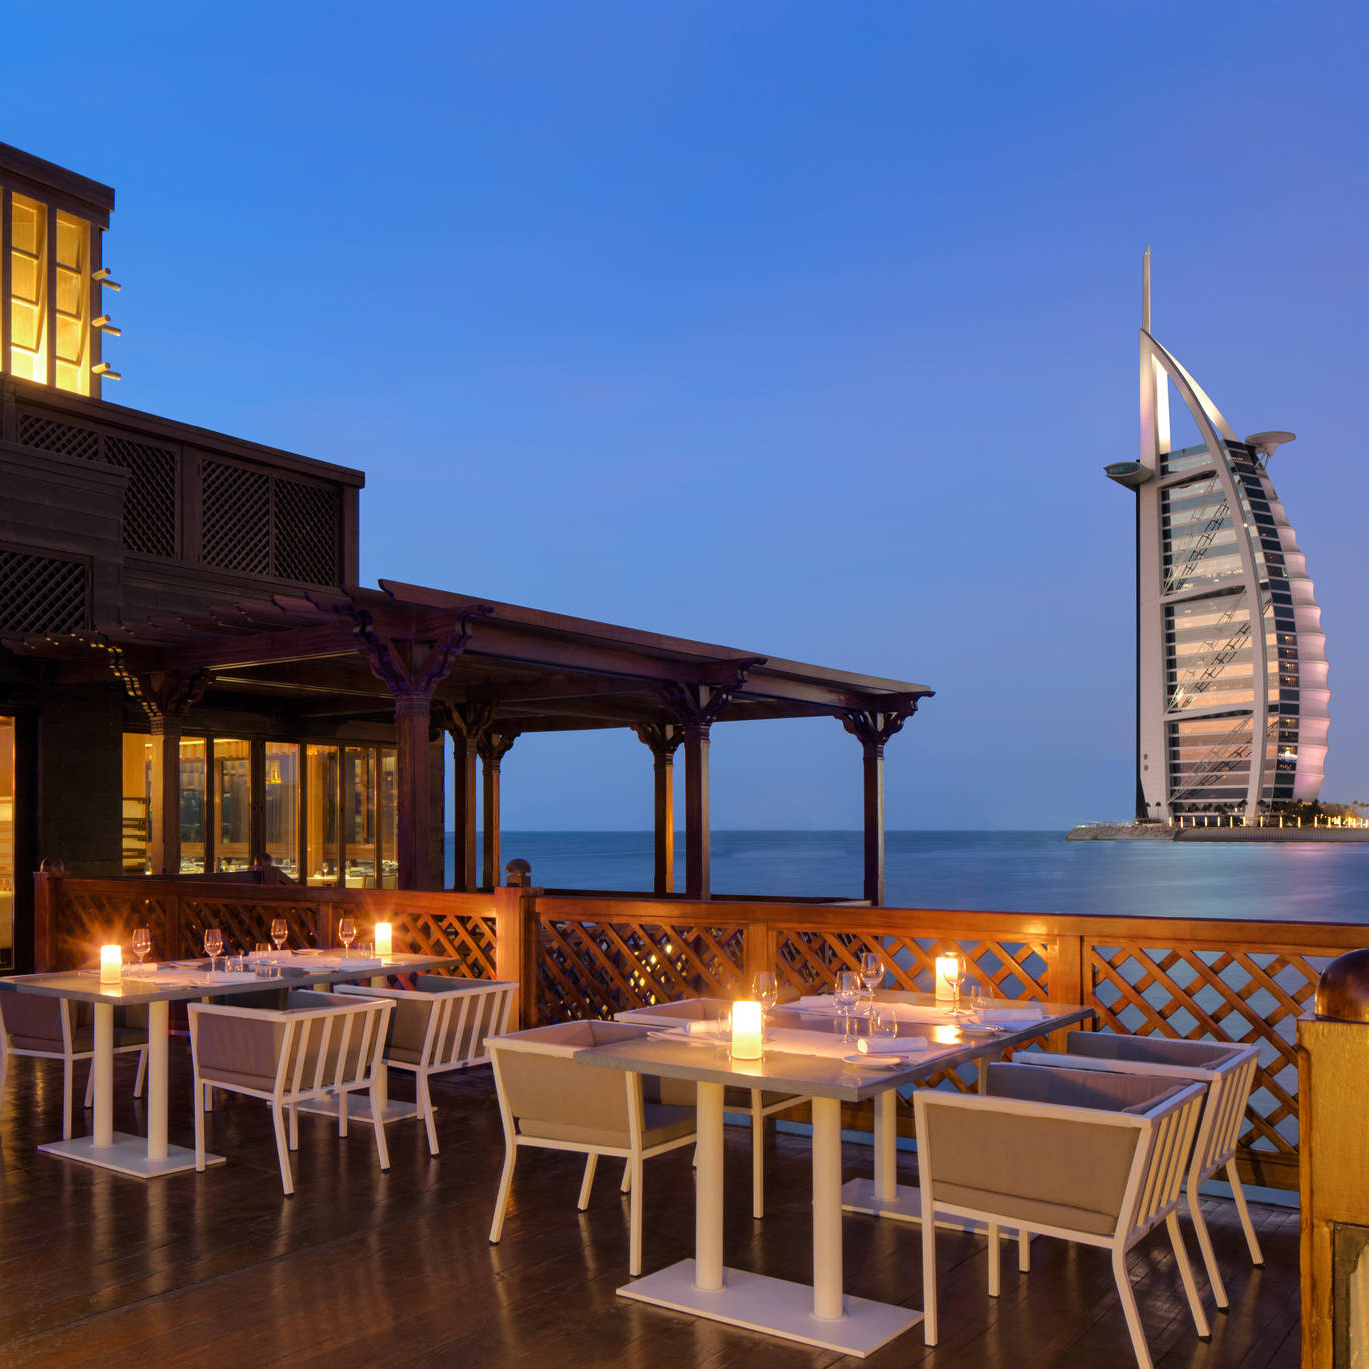 Pierchic Bar at Al Madinat Jumeirah